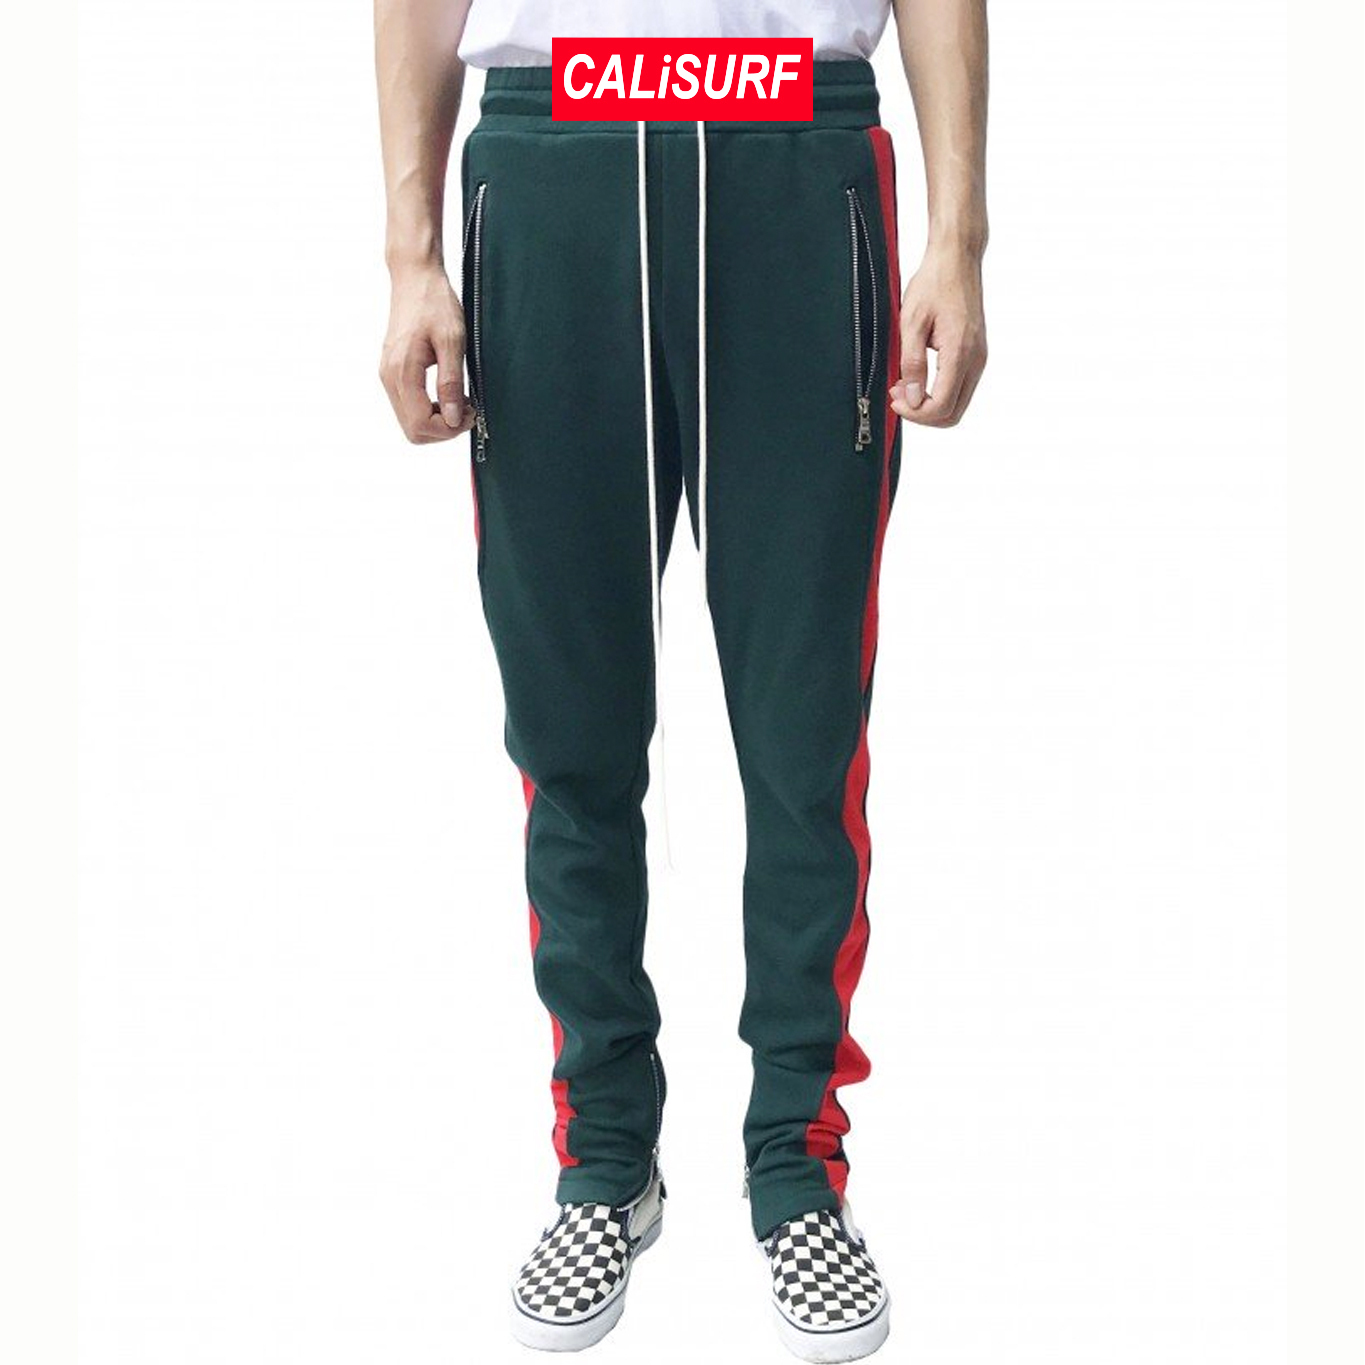 36/ URKOOL(ユーアークール)DARK GREEN TRACK PANT - RED PANEL